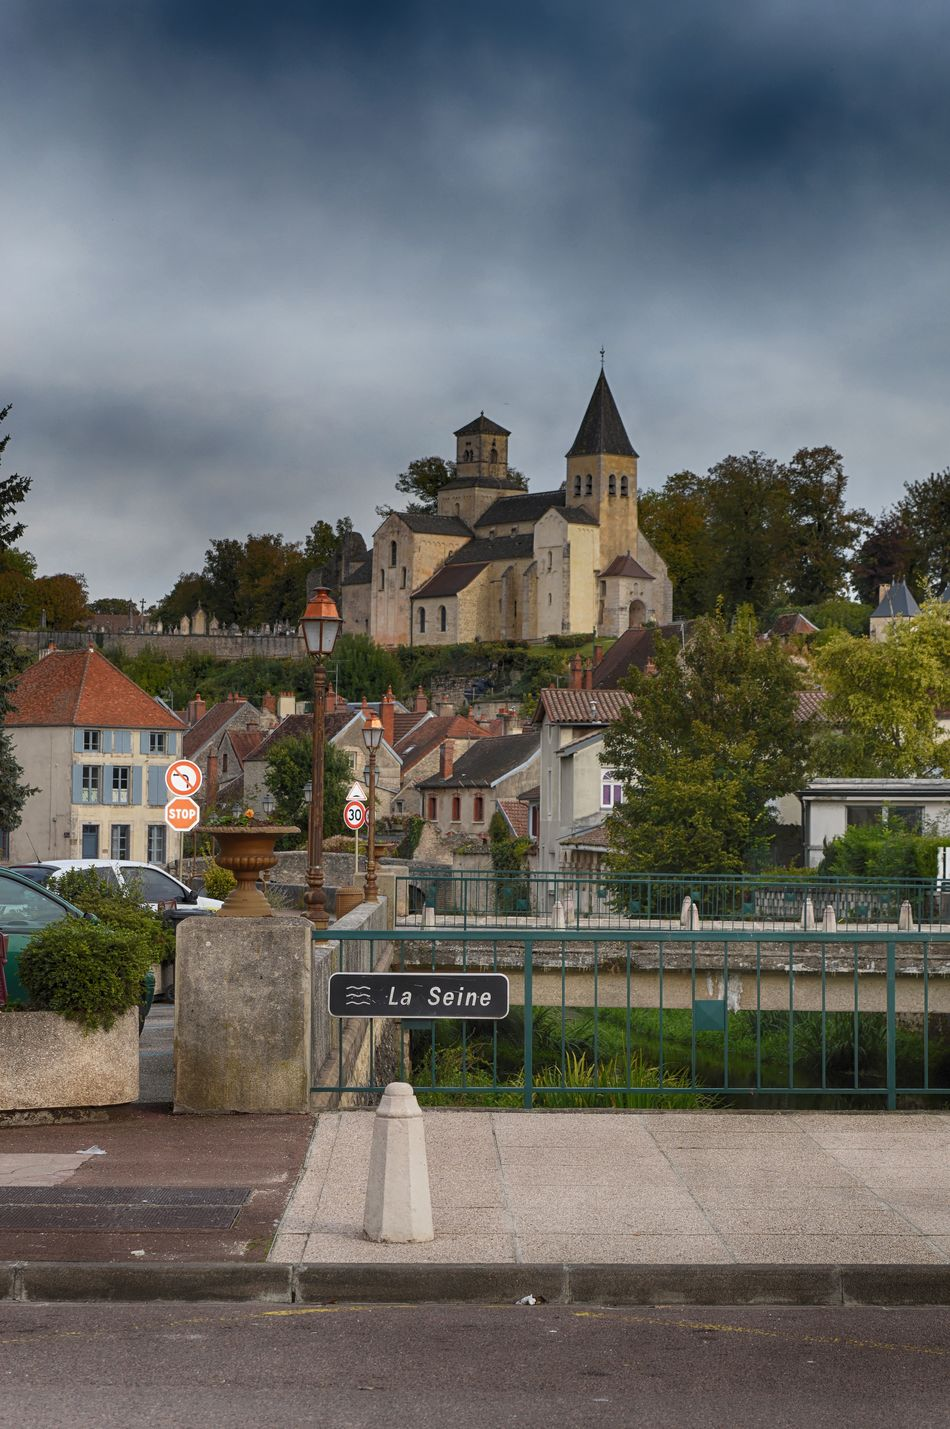 Architecture Building Exterior Built Structure Church City Cloud - Sky Countryside Day EyeEmNewHere France French La Seine No People Outdoors Riverside Rural Rural Scene Sign Sky Travel Photography Tree Typical Village